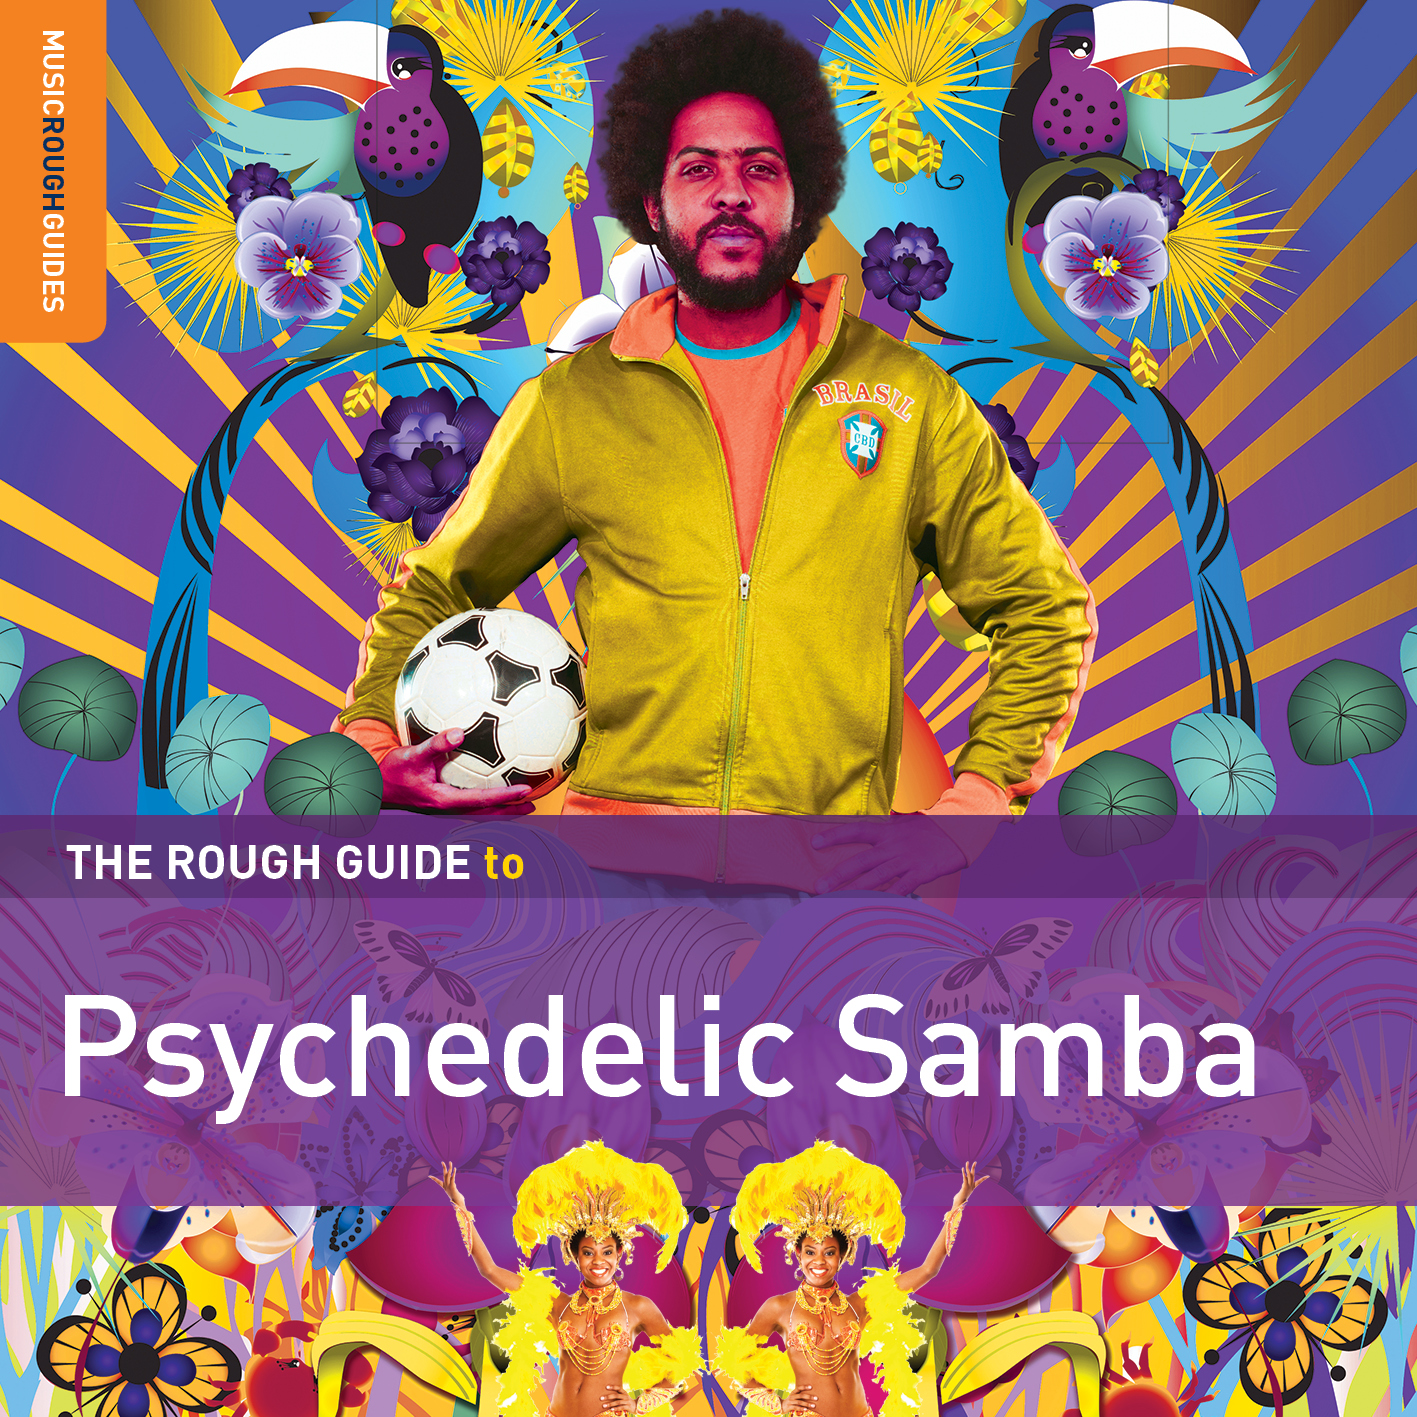 The Rough Guide to Psychedelic Samba - World Music Network